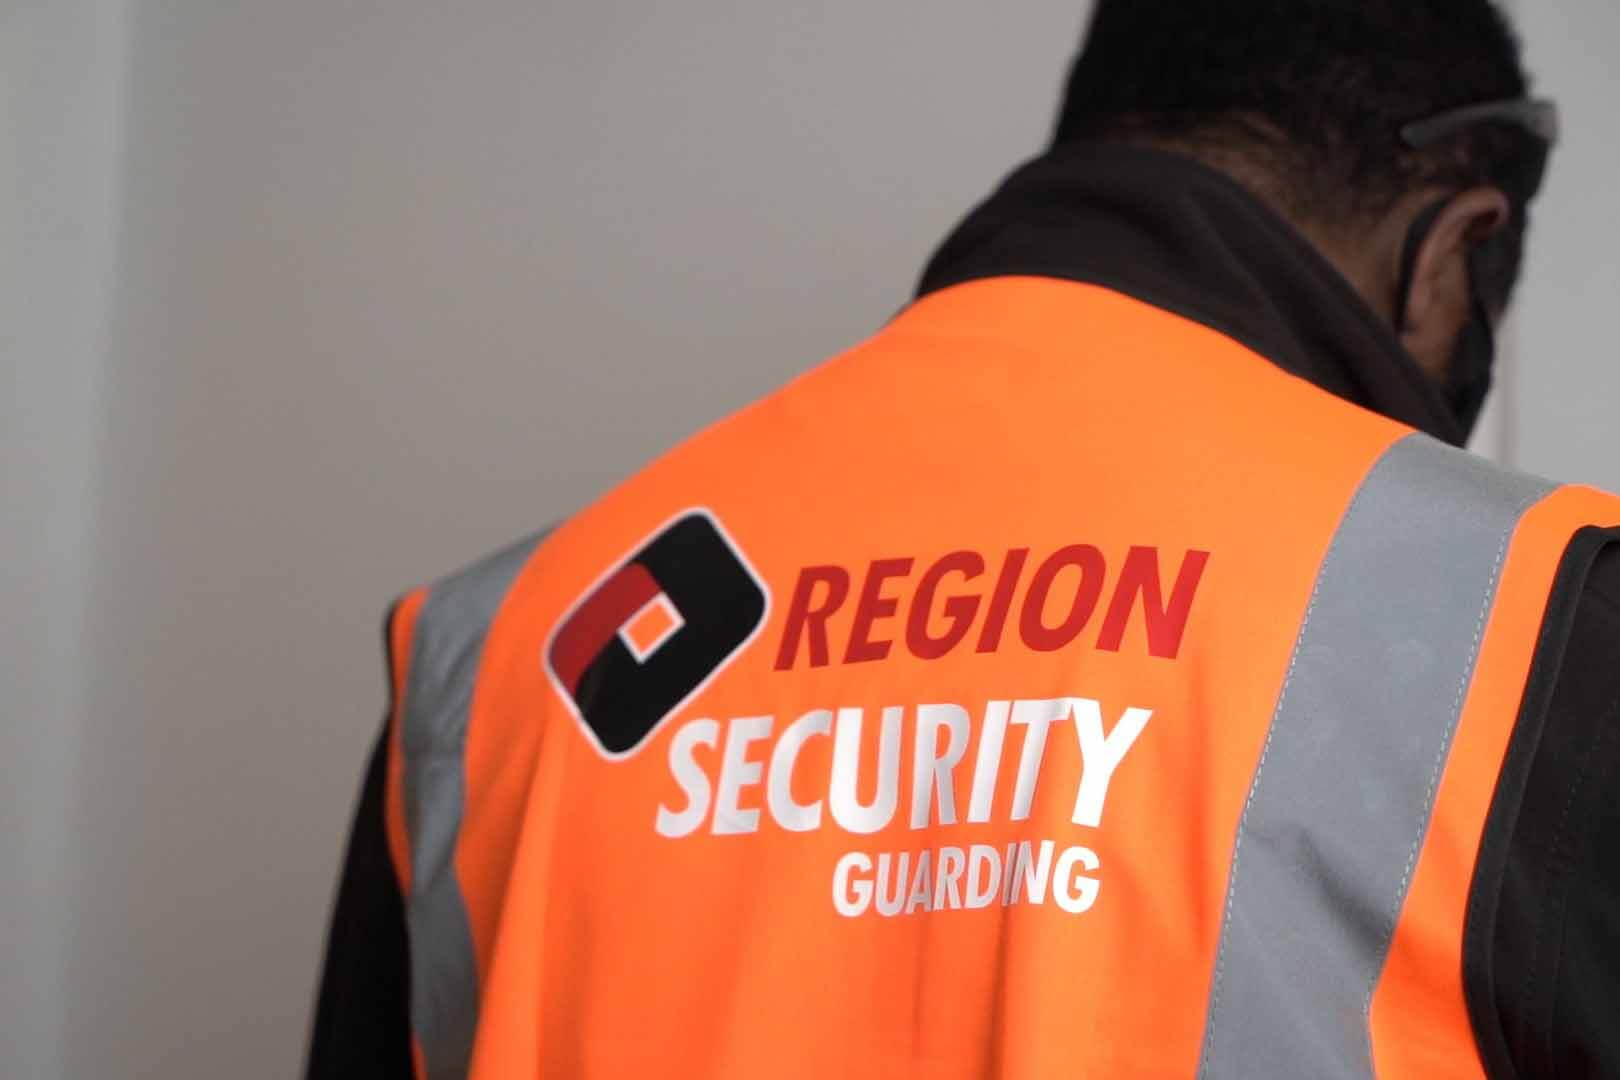 Warehouse security in dudley